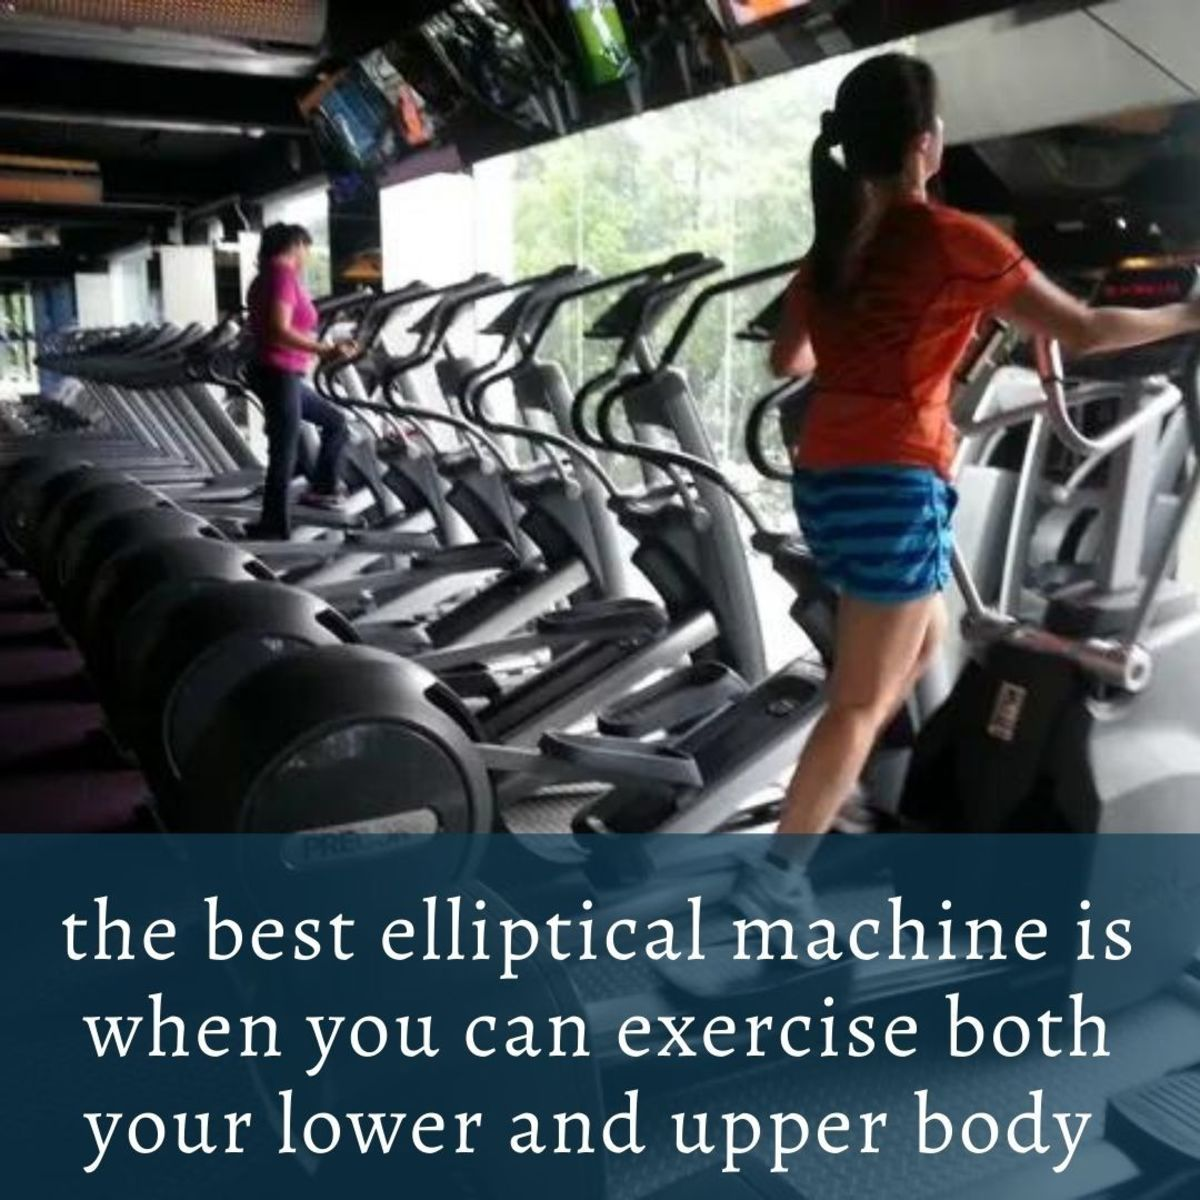 The best elliptical machine is when you can exercise both your lower and upper body